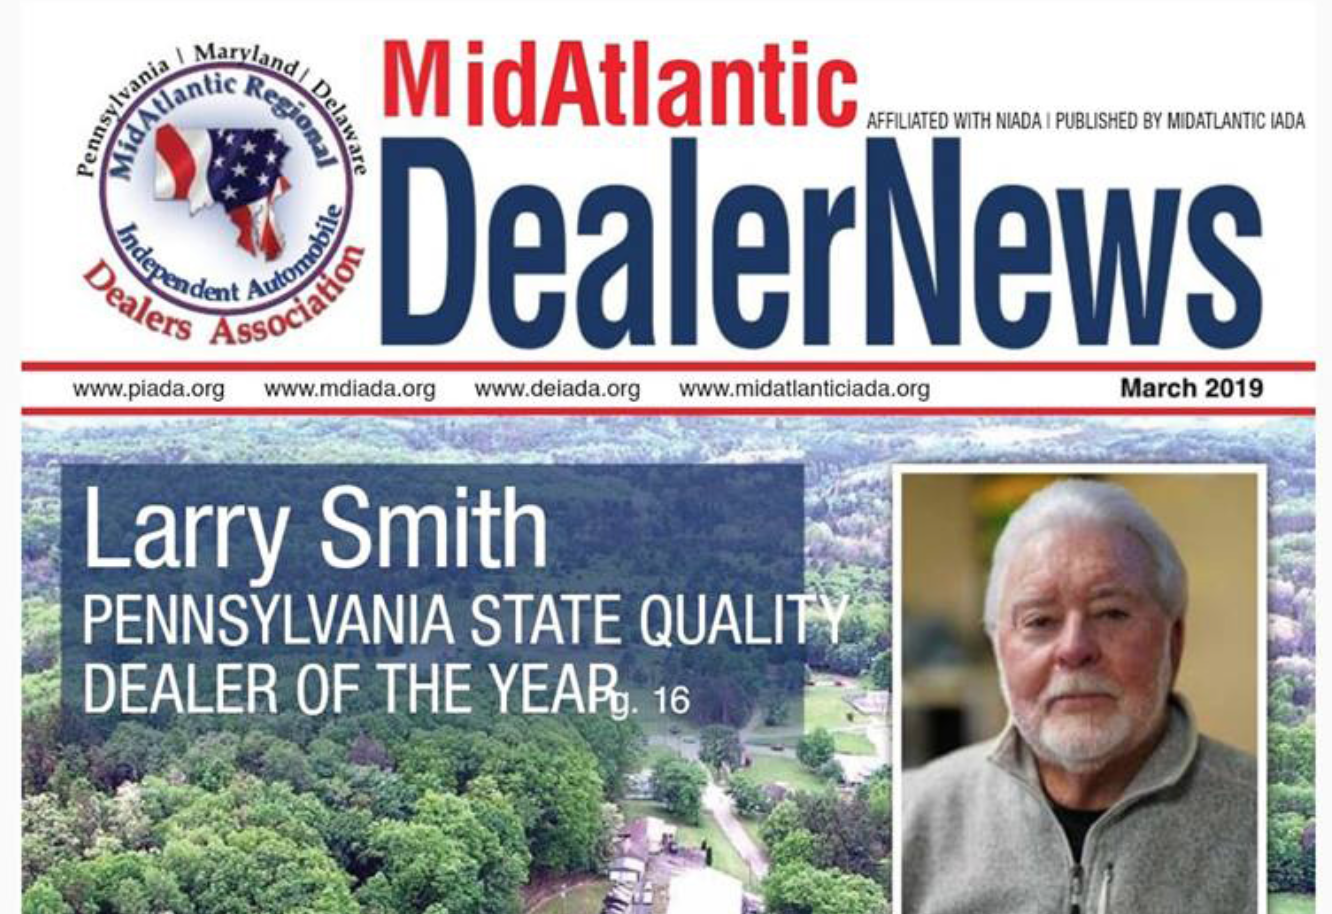 Smith's Auto Dealer of the Year